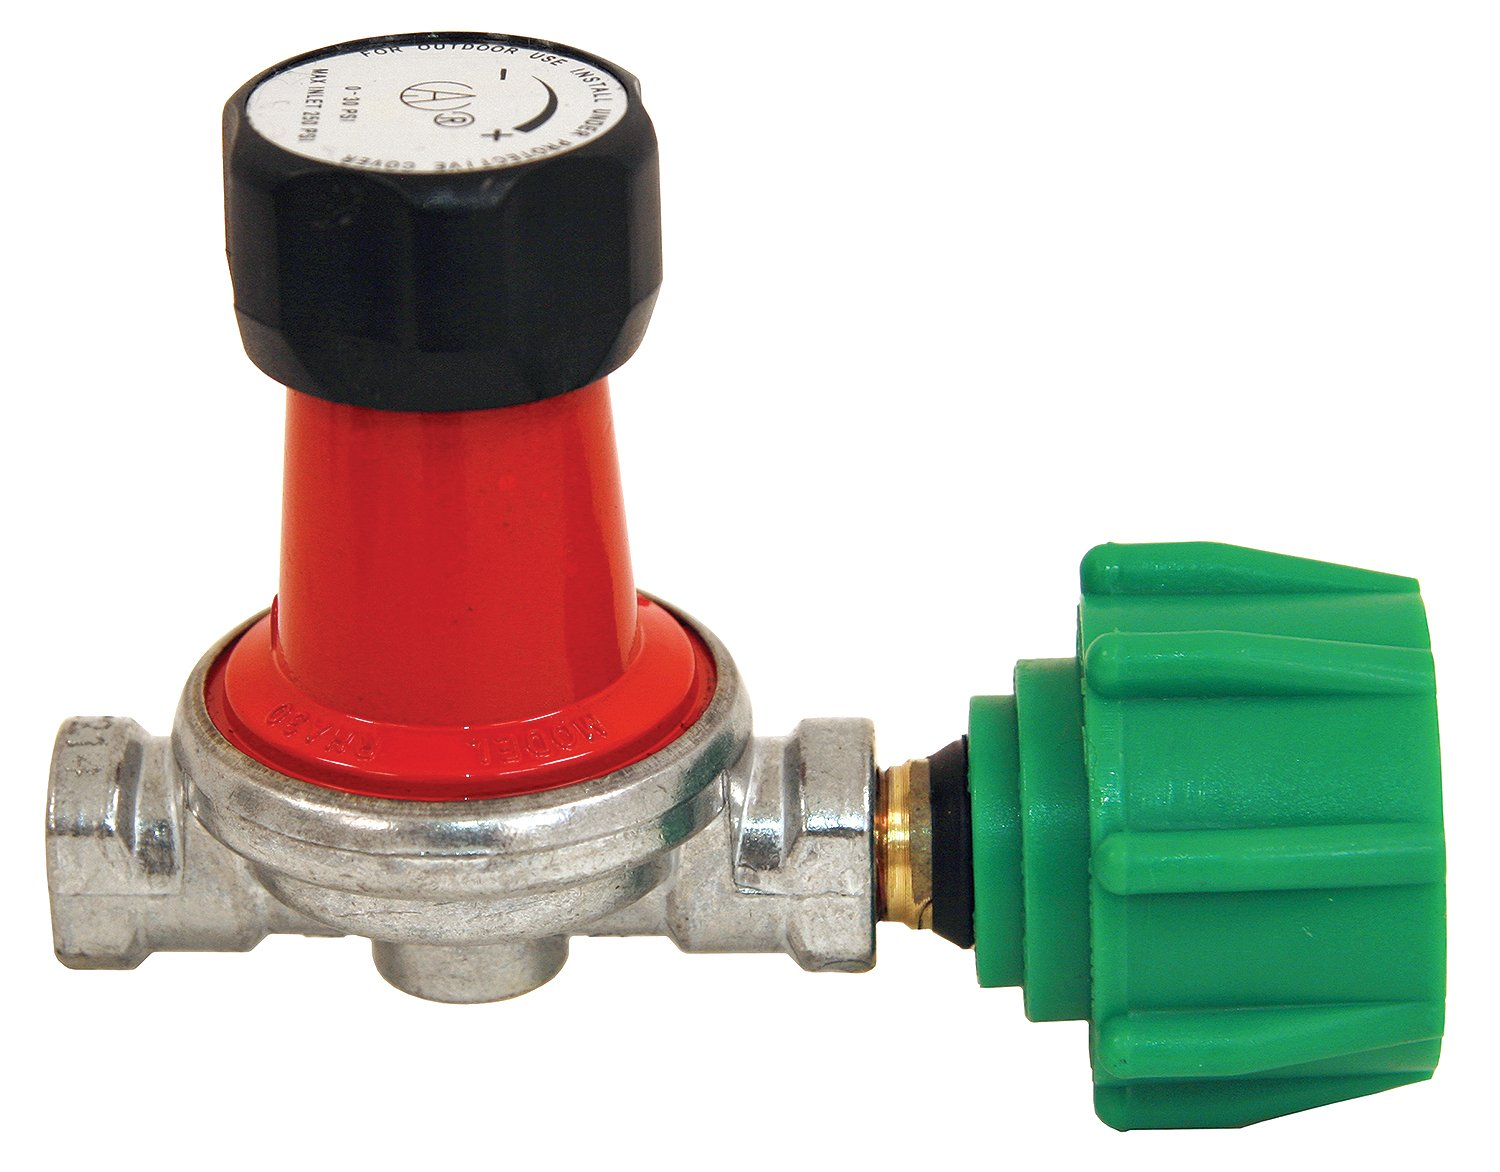 Bayou Classic 7850 0-30 PSI Adjustable High-Pressure Propane Regulator for 1/4-Inch Inlets and Outlets